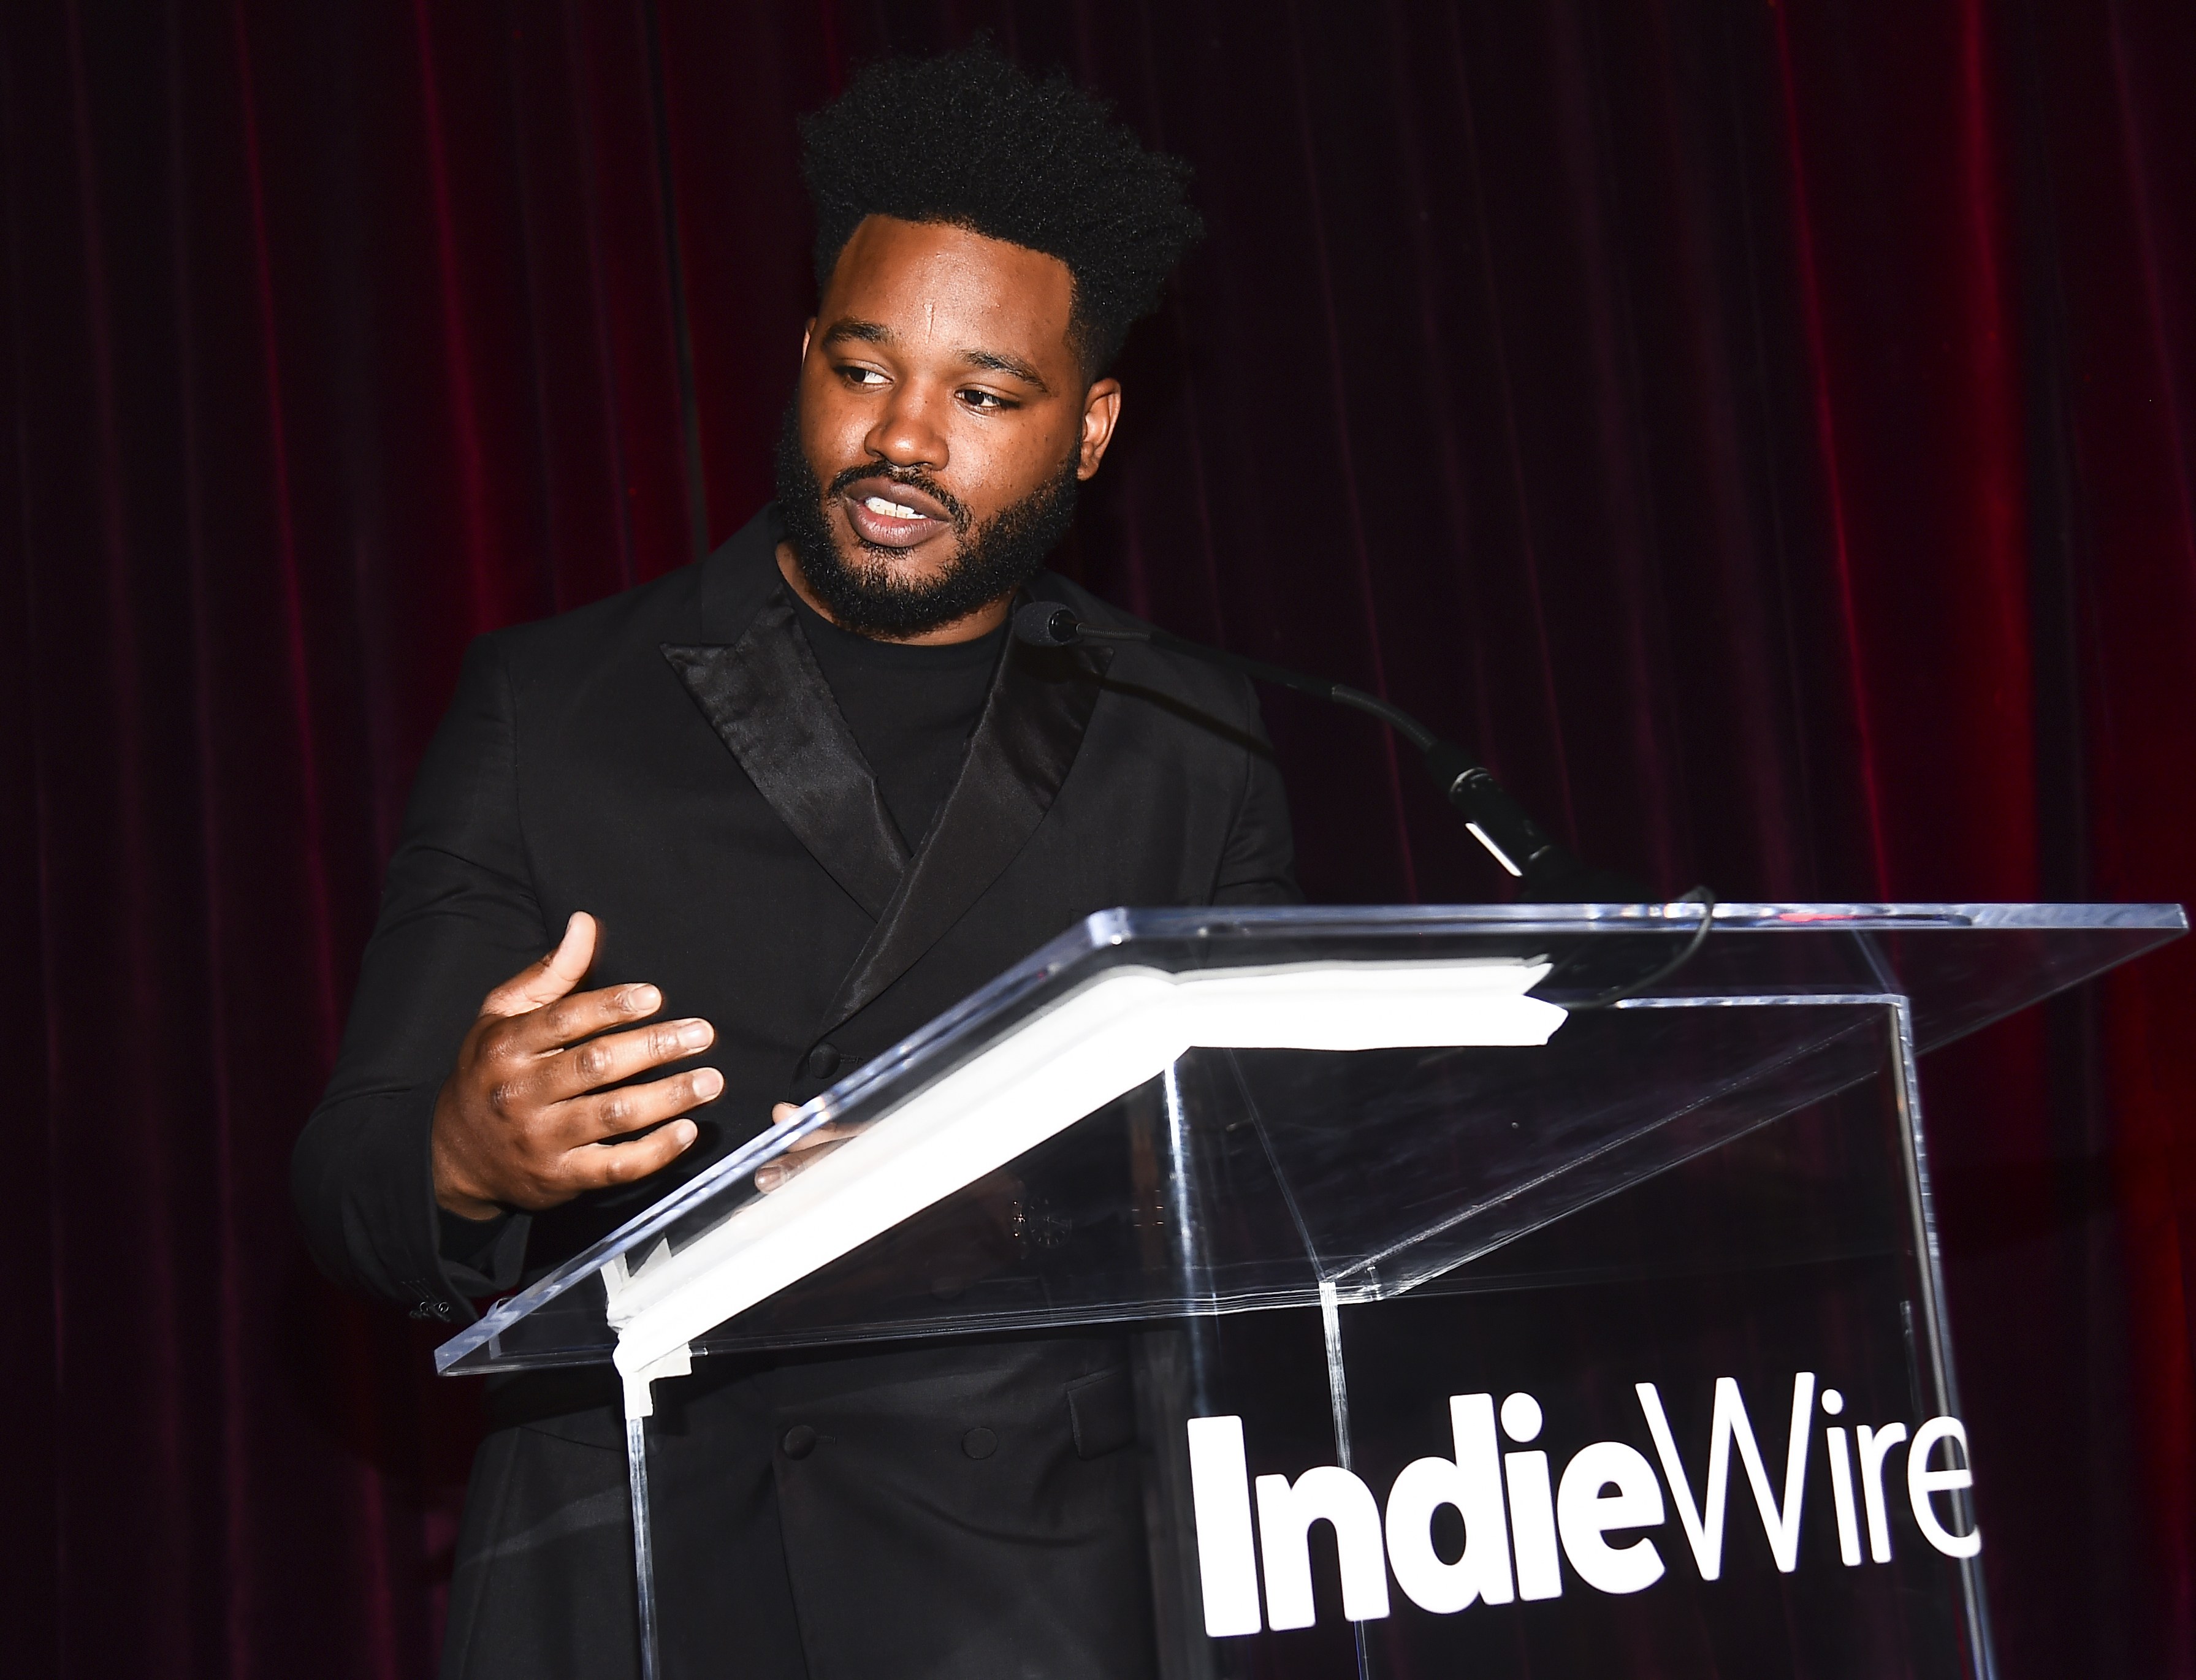 Ryan Coogler Knows 'Black Panther 2' Will Come With New Pressures, but He's Been There Before — IndieWire Honors